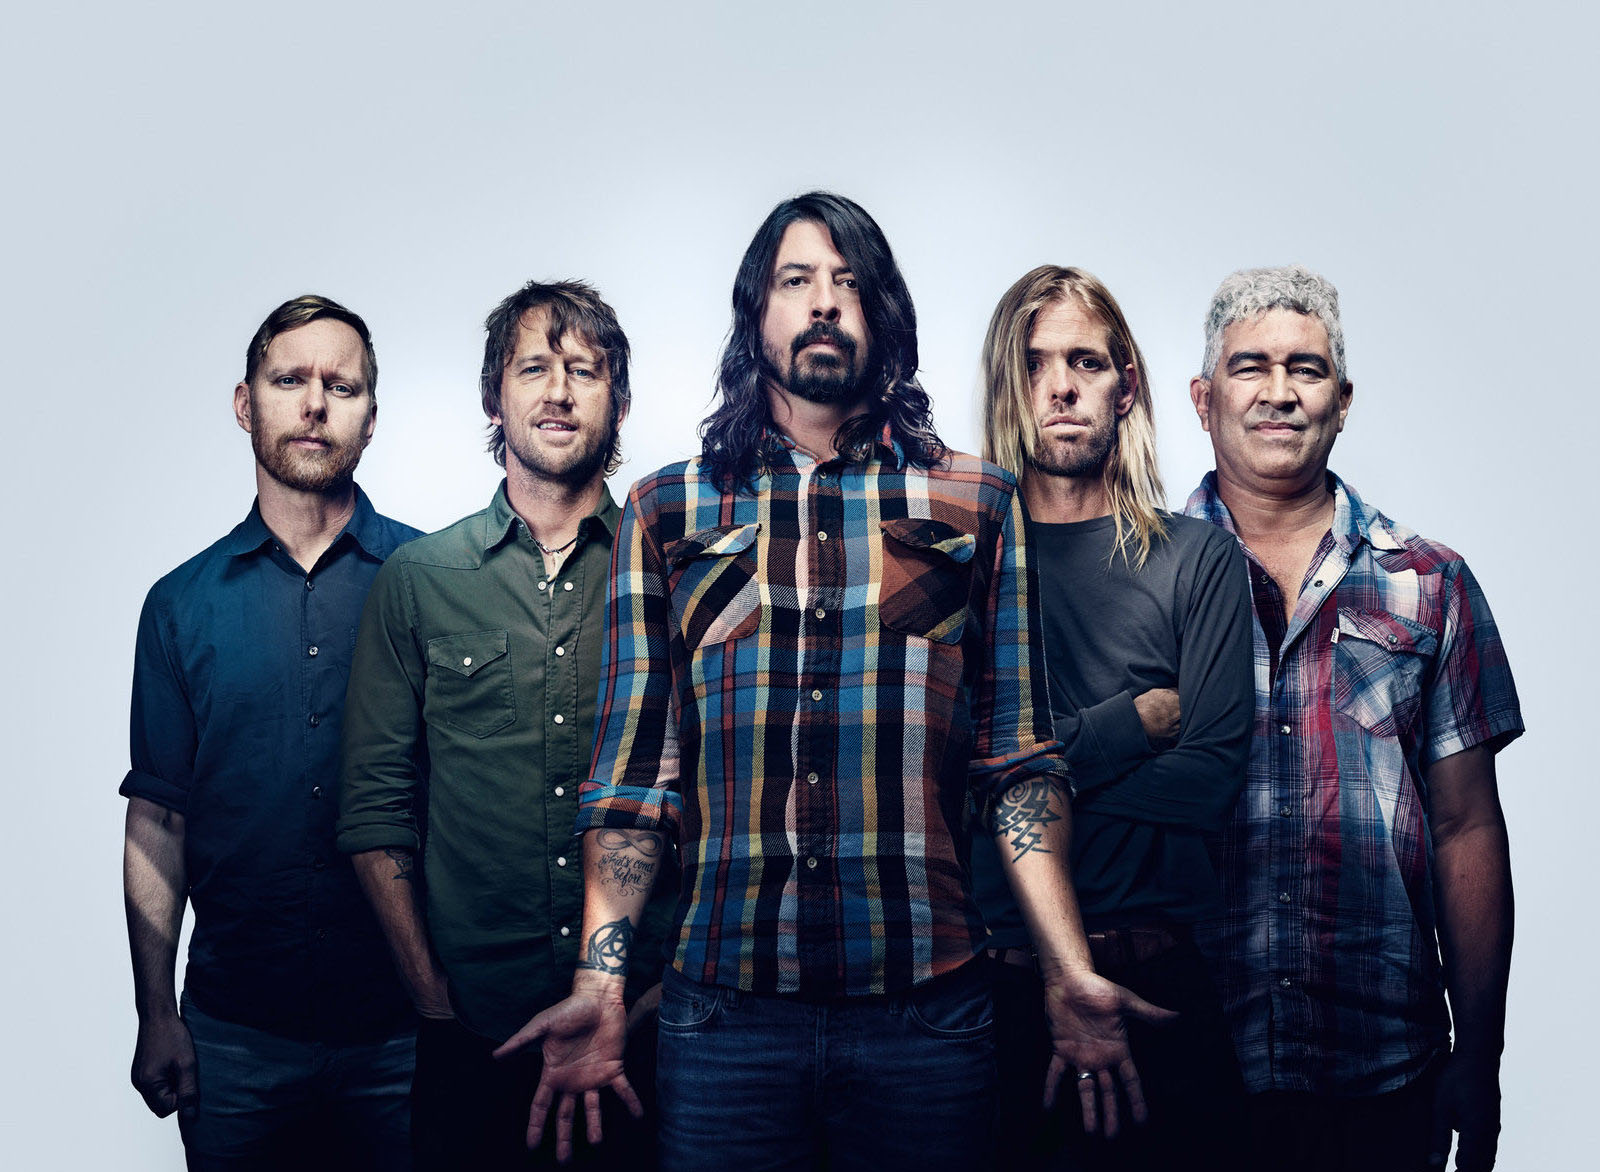 Cool Collections Of Foo Fighters Wallpapers HD For Desktop Laptop And Mobiles Here You Can Download More Than 5 Million Photography Uploaded